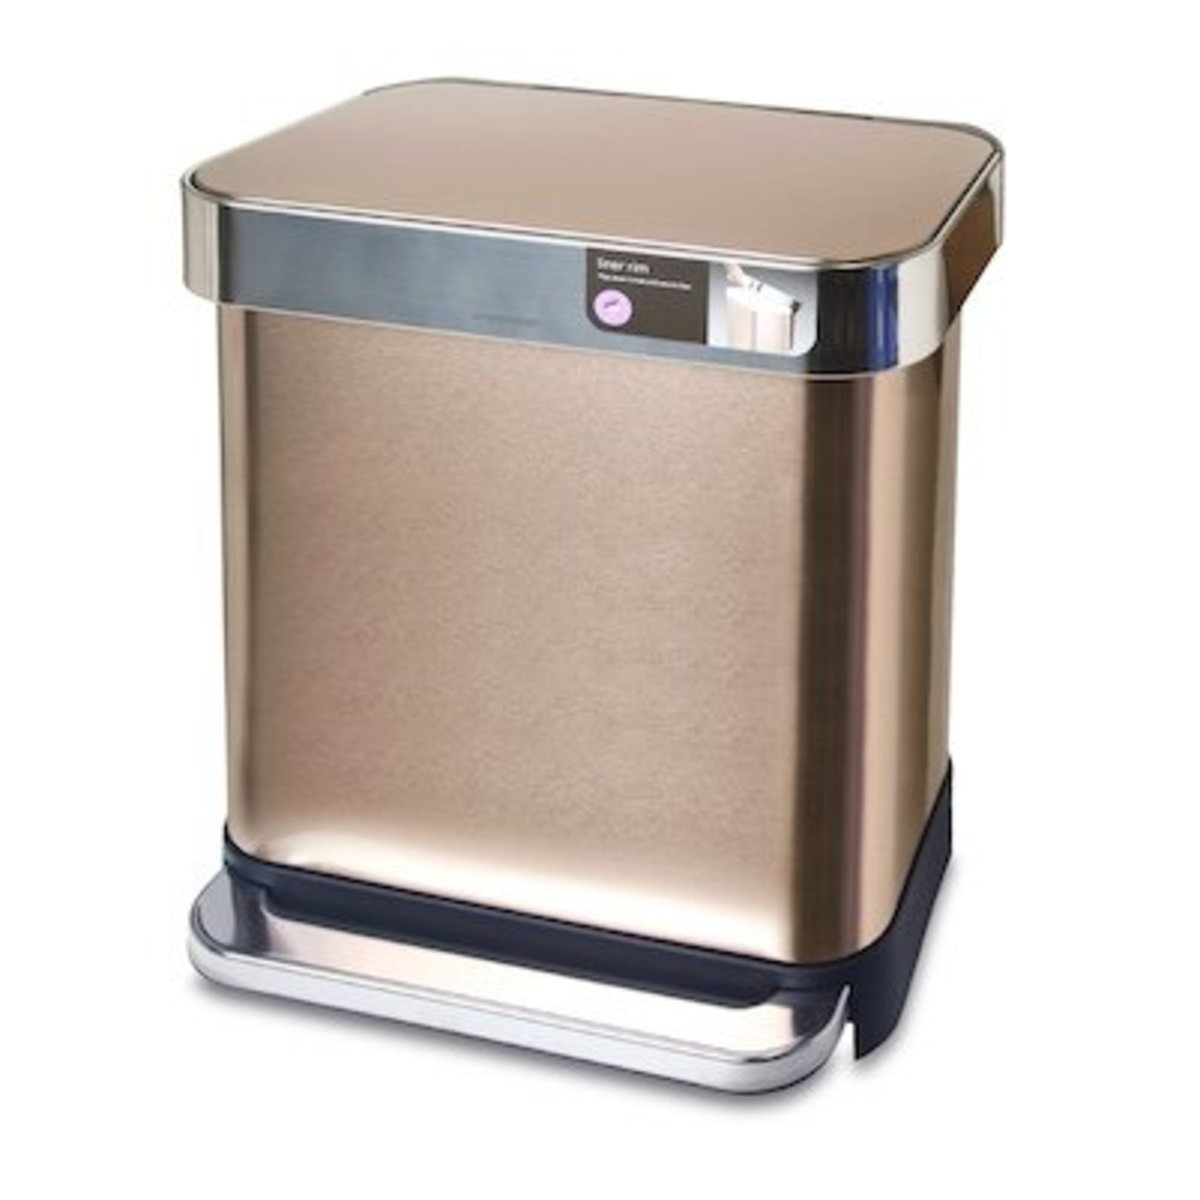 30L RECT STEPCAN-LINER F-GOLD【Authorised distributor import】